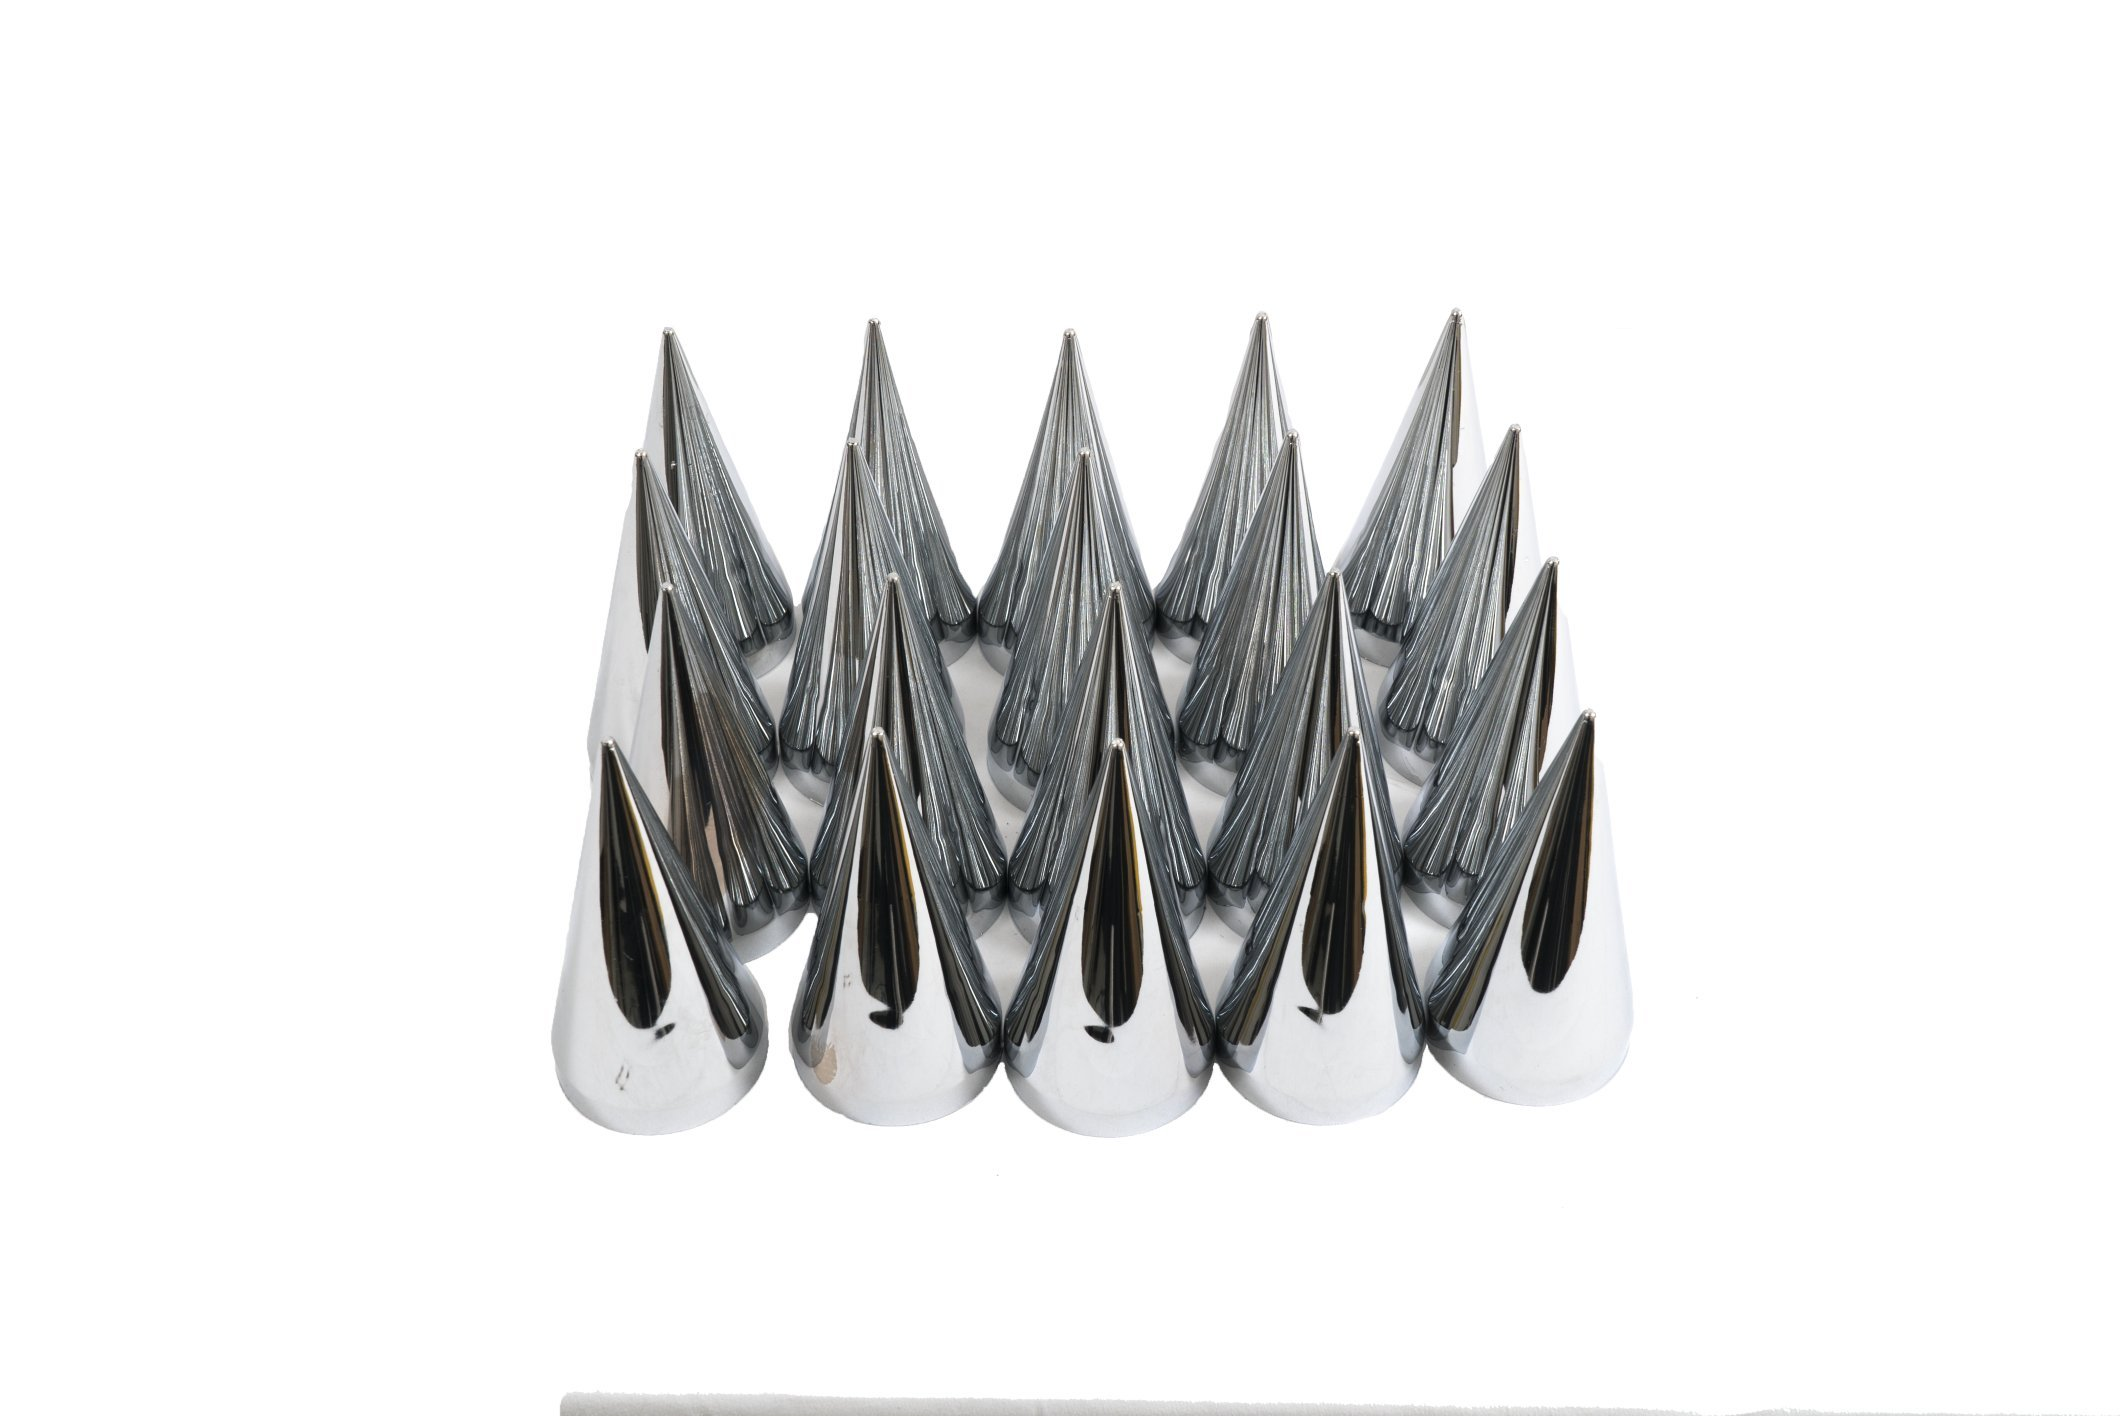 Diesel Laptops 20 Pack of 33mm x 4-1/2'' Chrome Spear Spike Style Push on Nut Cover for Commercial Heavy Semi Trucks with 12-month Membership to TruckFaultCodes by Diesel Laptops (Image #3)